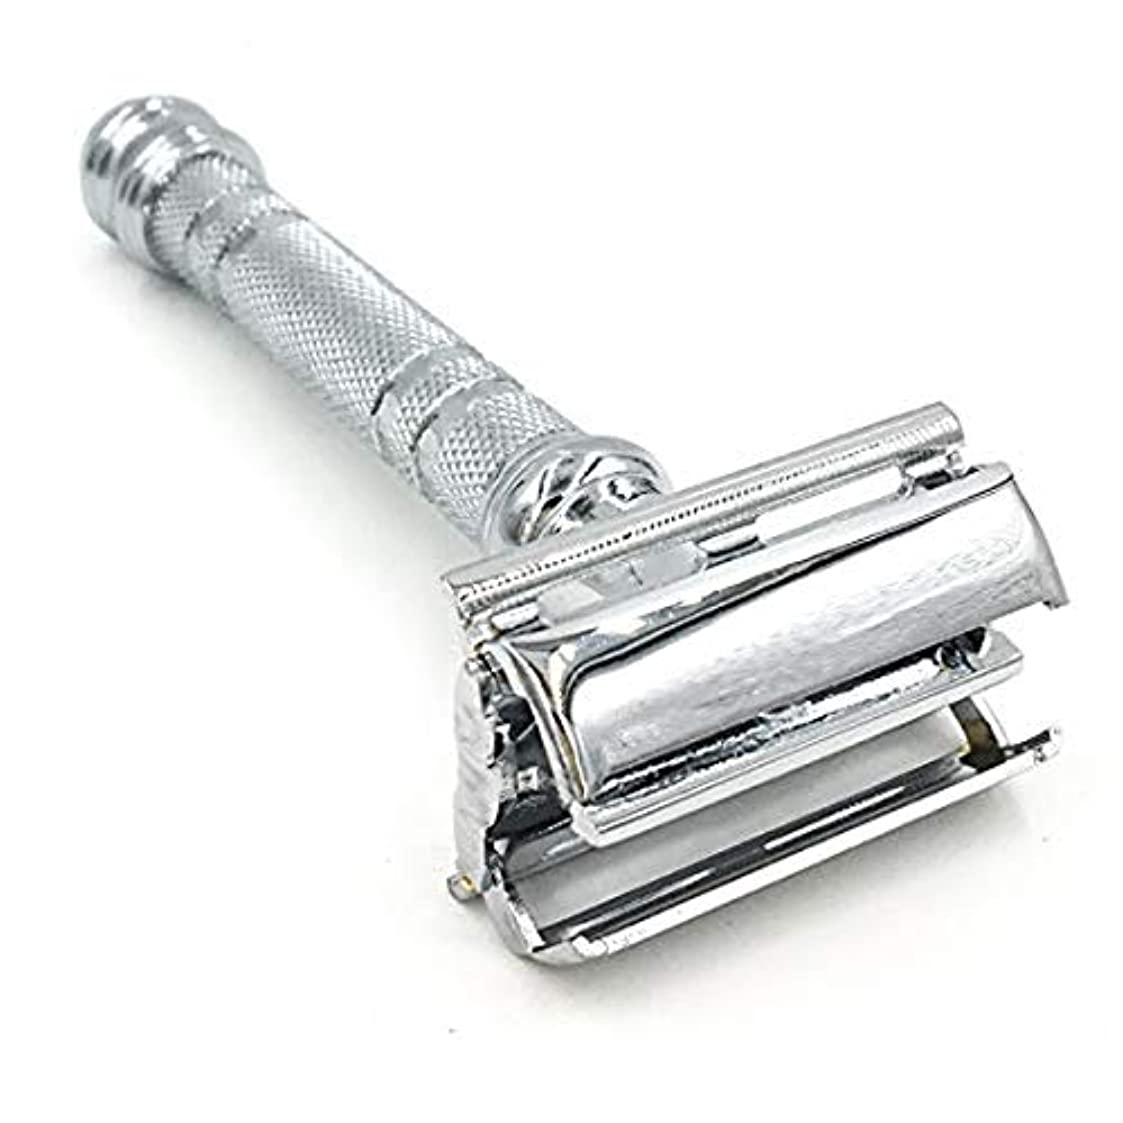 賛美歌困惑した科学者Parker 66R Butterfly Open Double Edge Safety Razor - Super Heavyweight - Brand New for 2016 by Parker Safety Razor